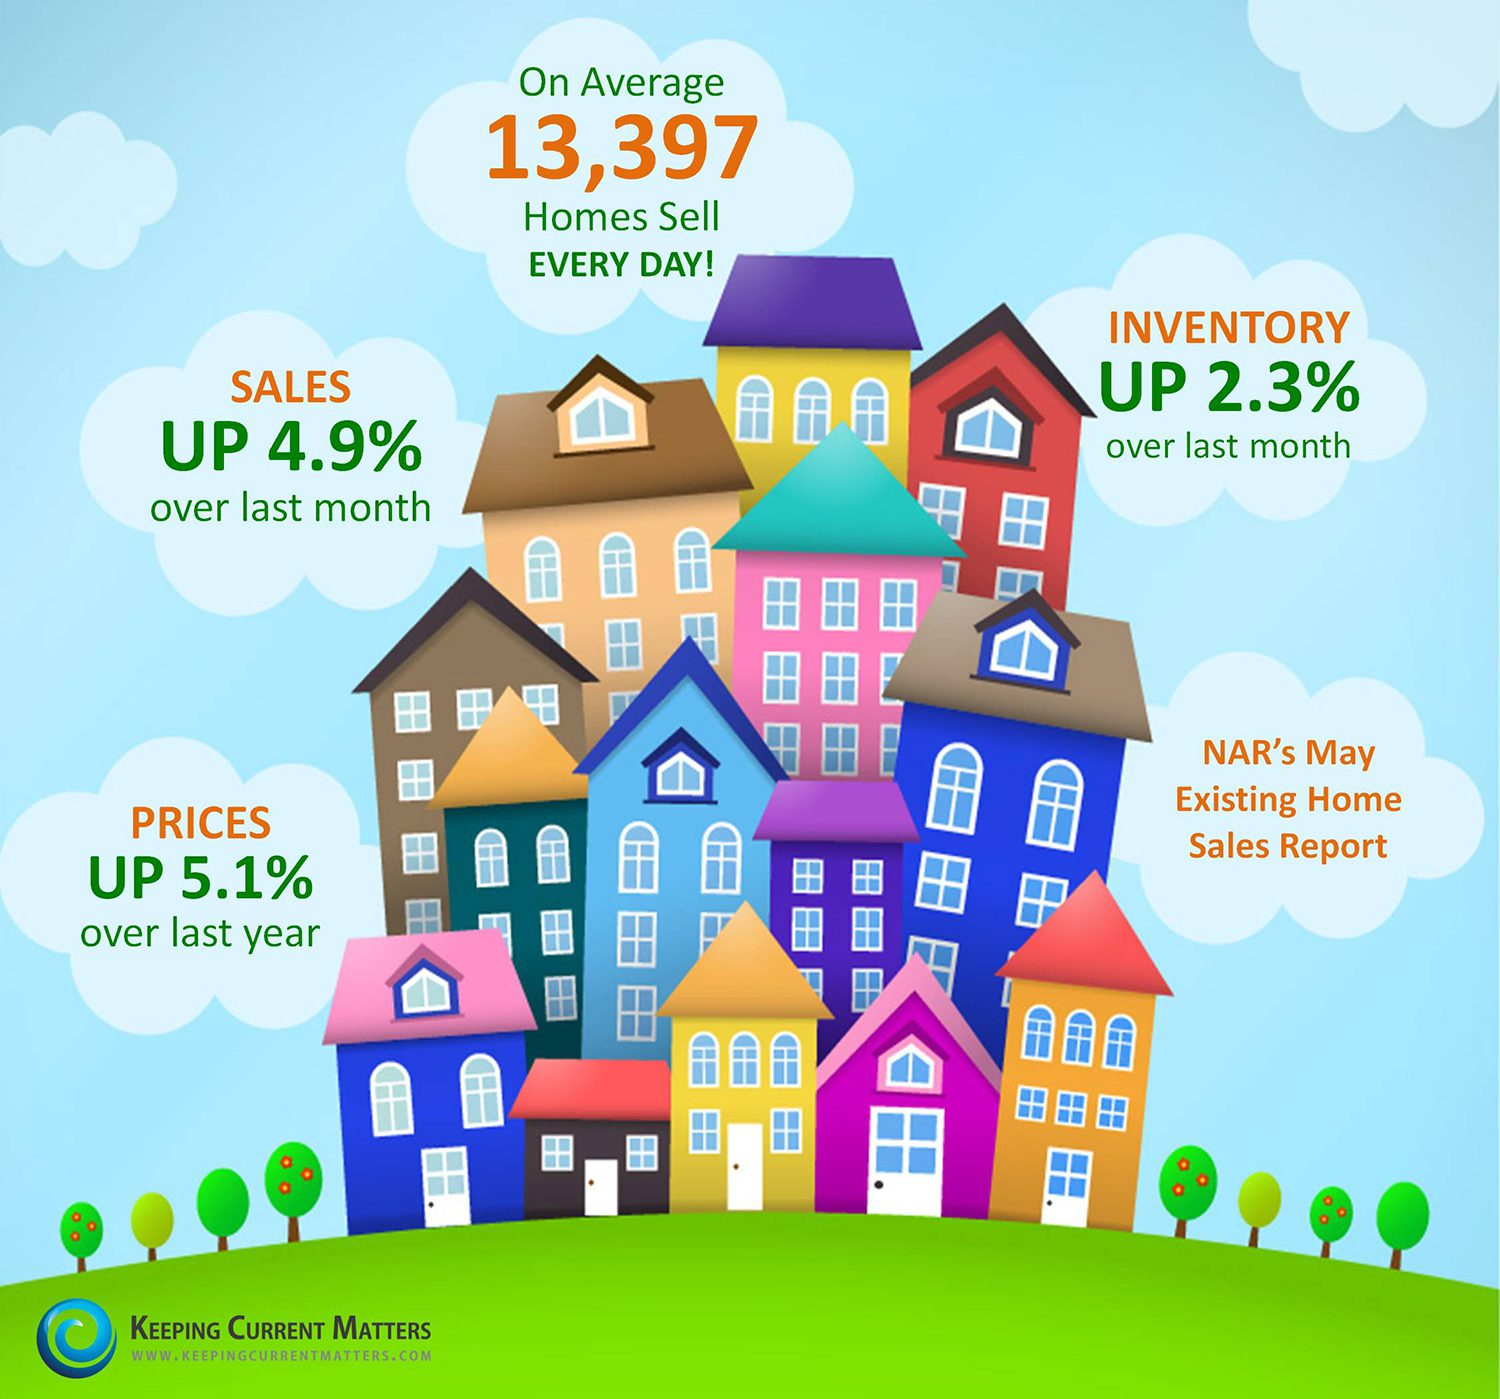 13 397 Homes Sold Yesterday